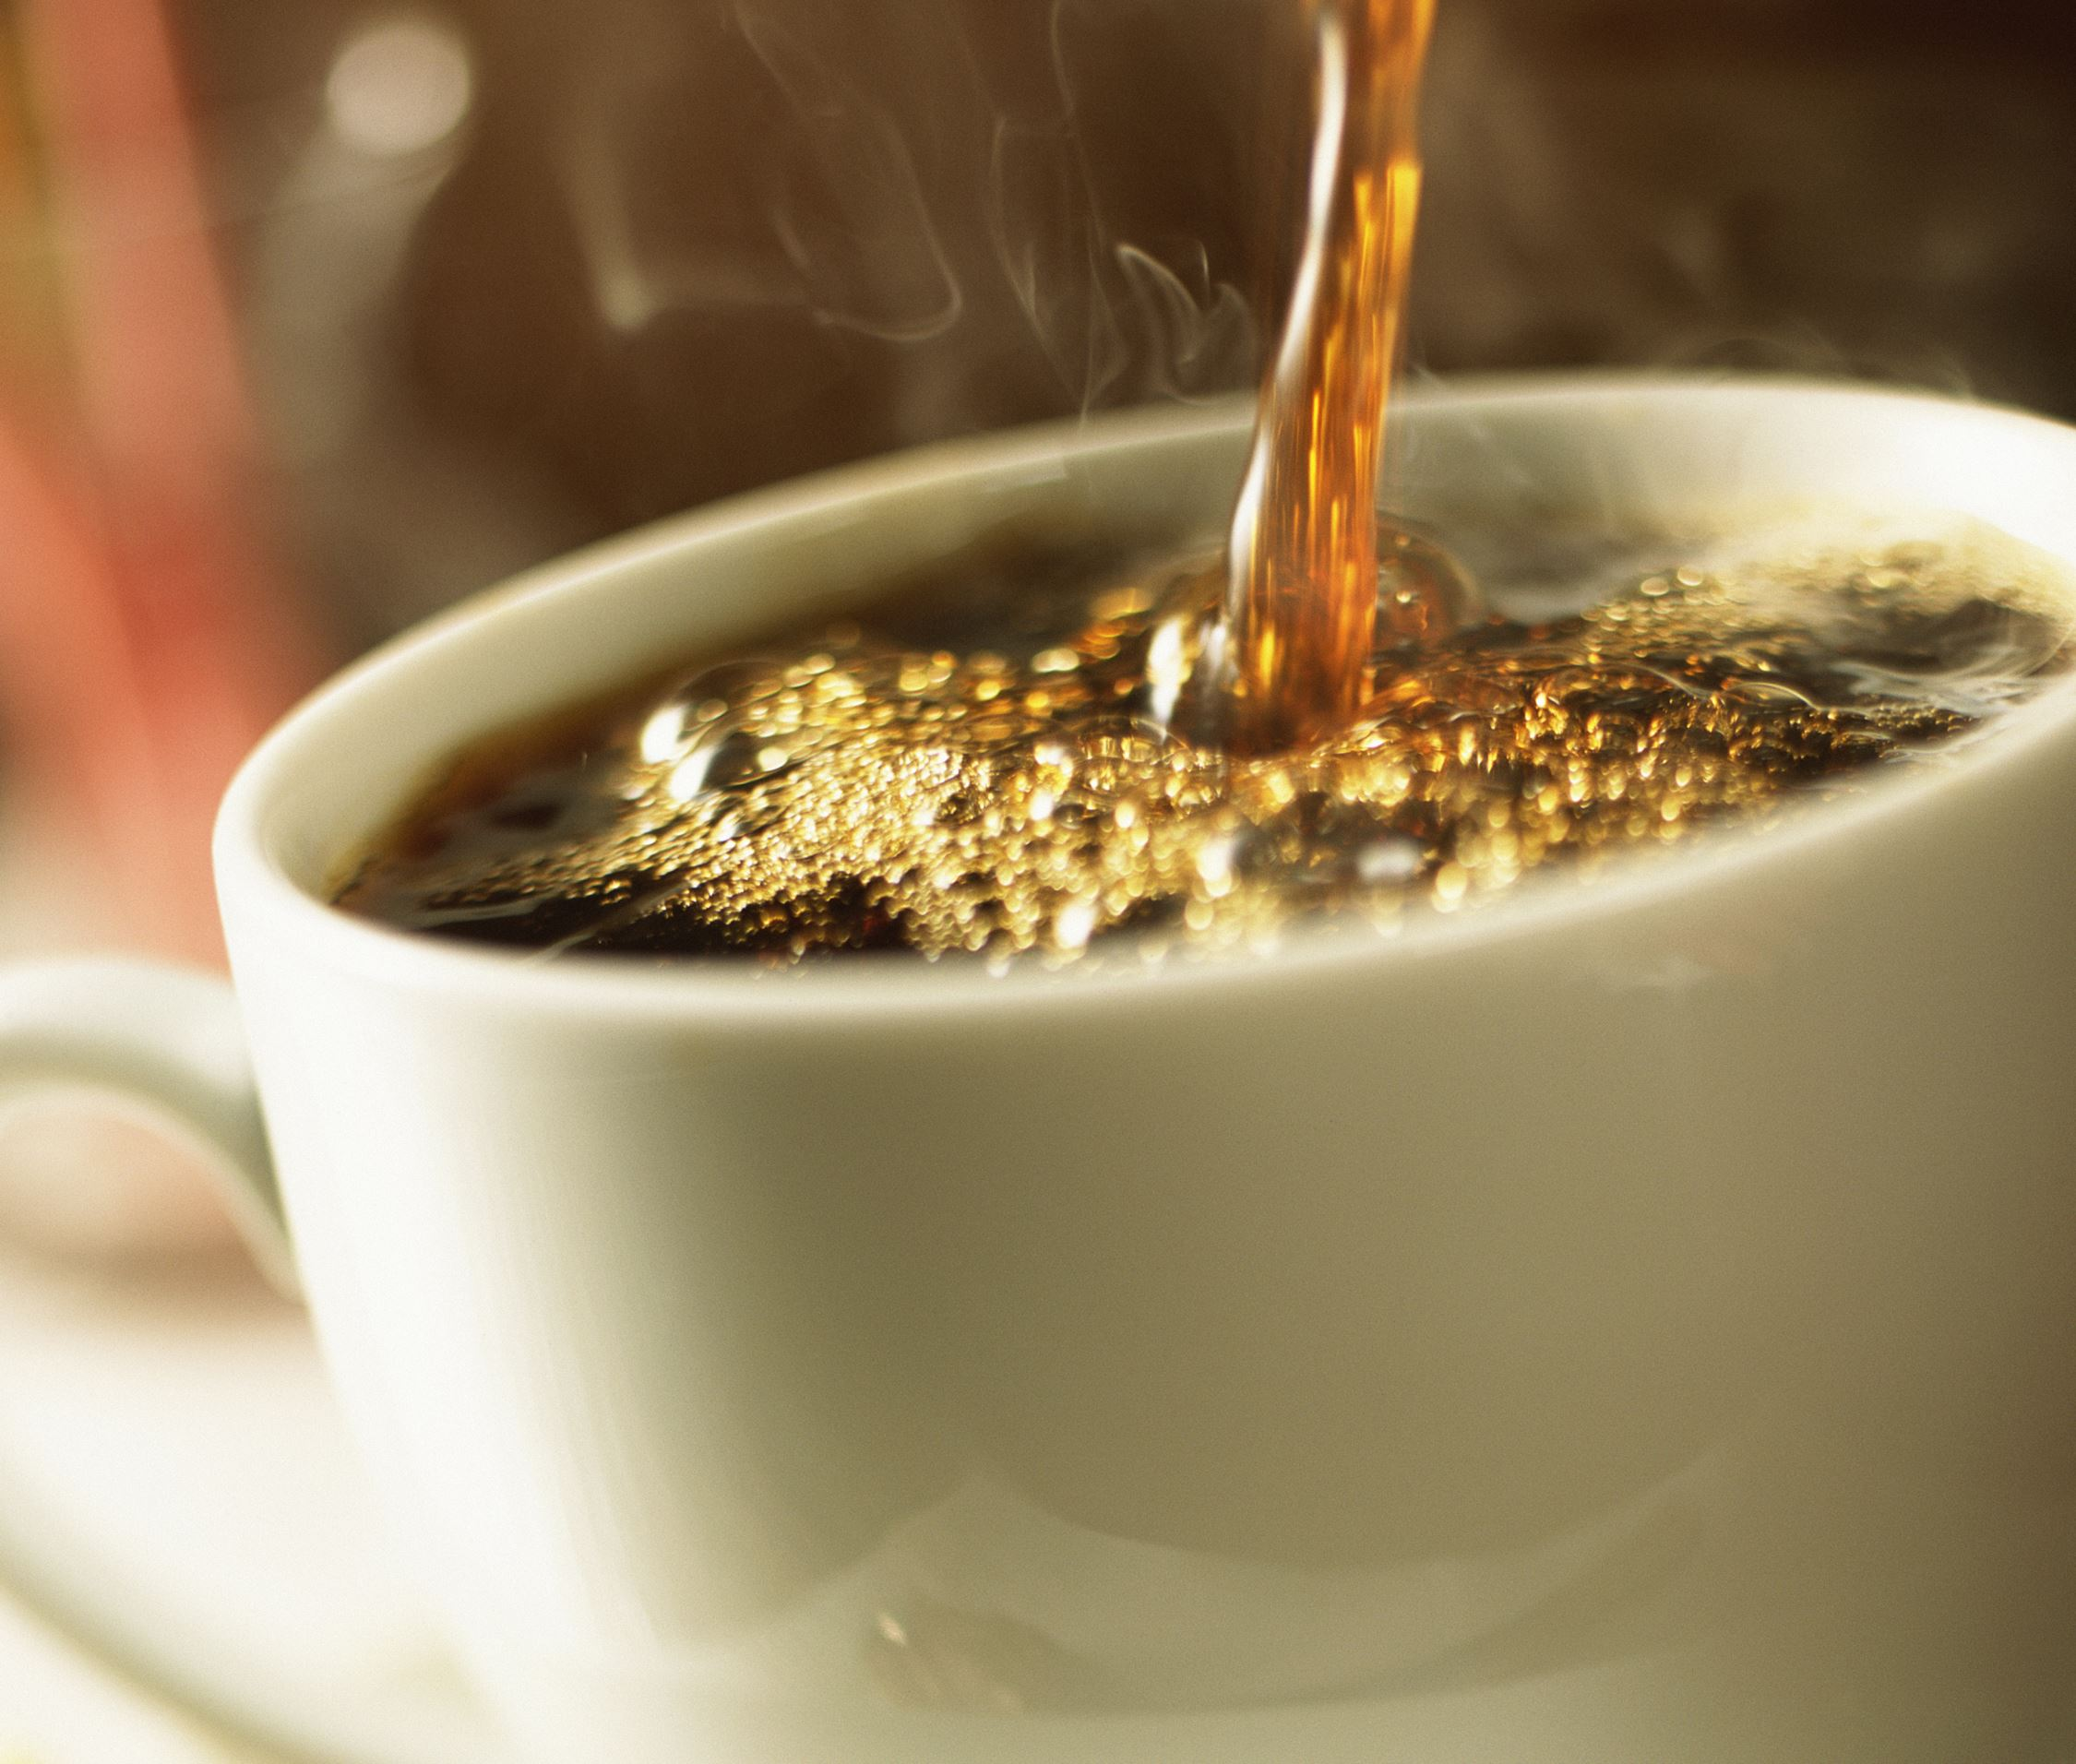 A cup of coffee being poured